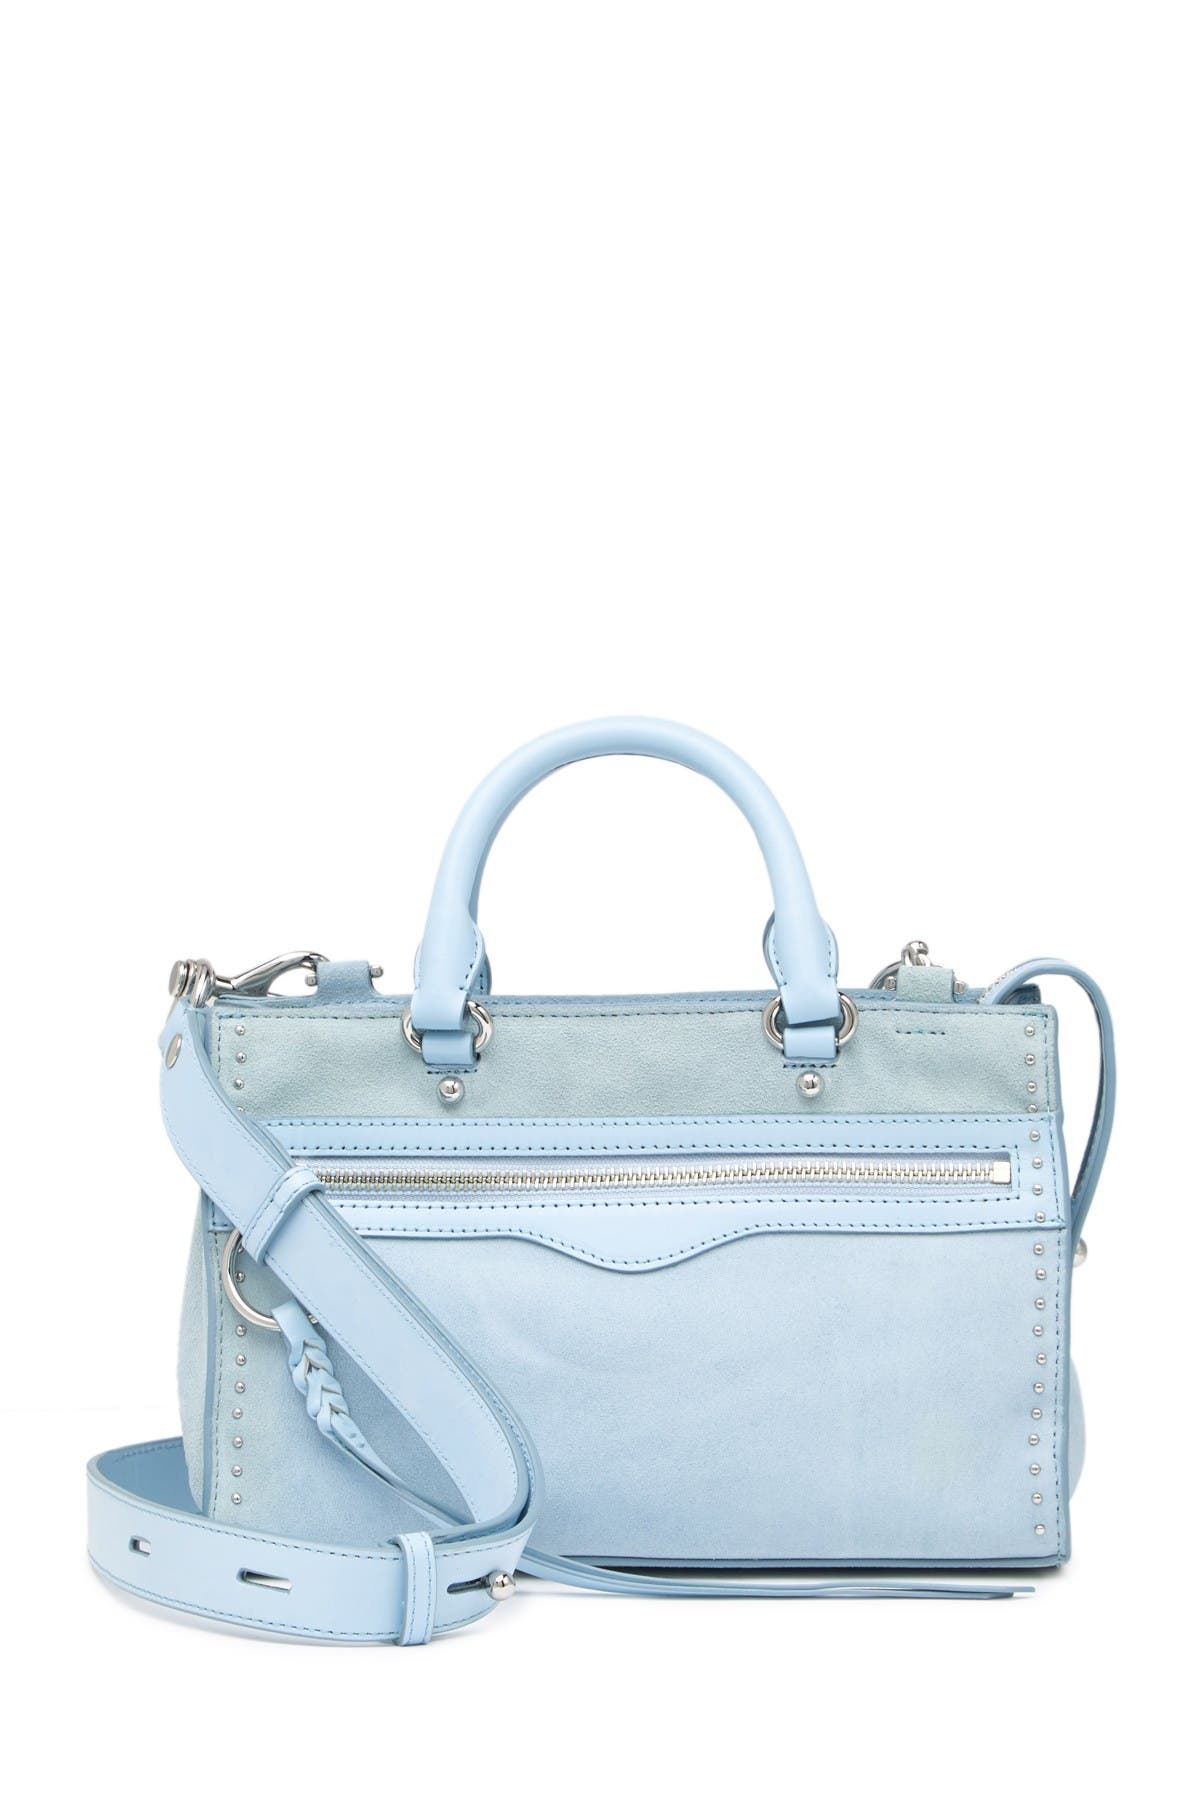 Image of Rebecca Minkoff Micro Bedford Zip Satchel